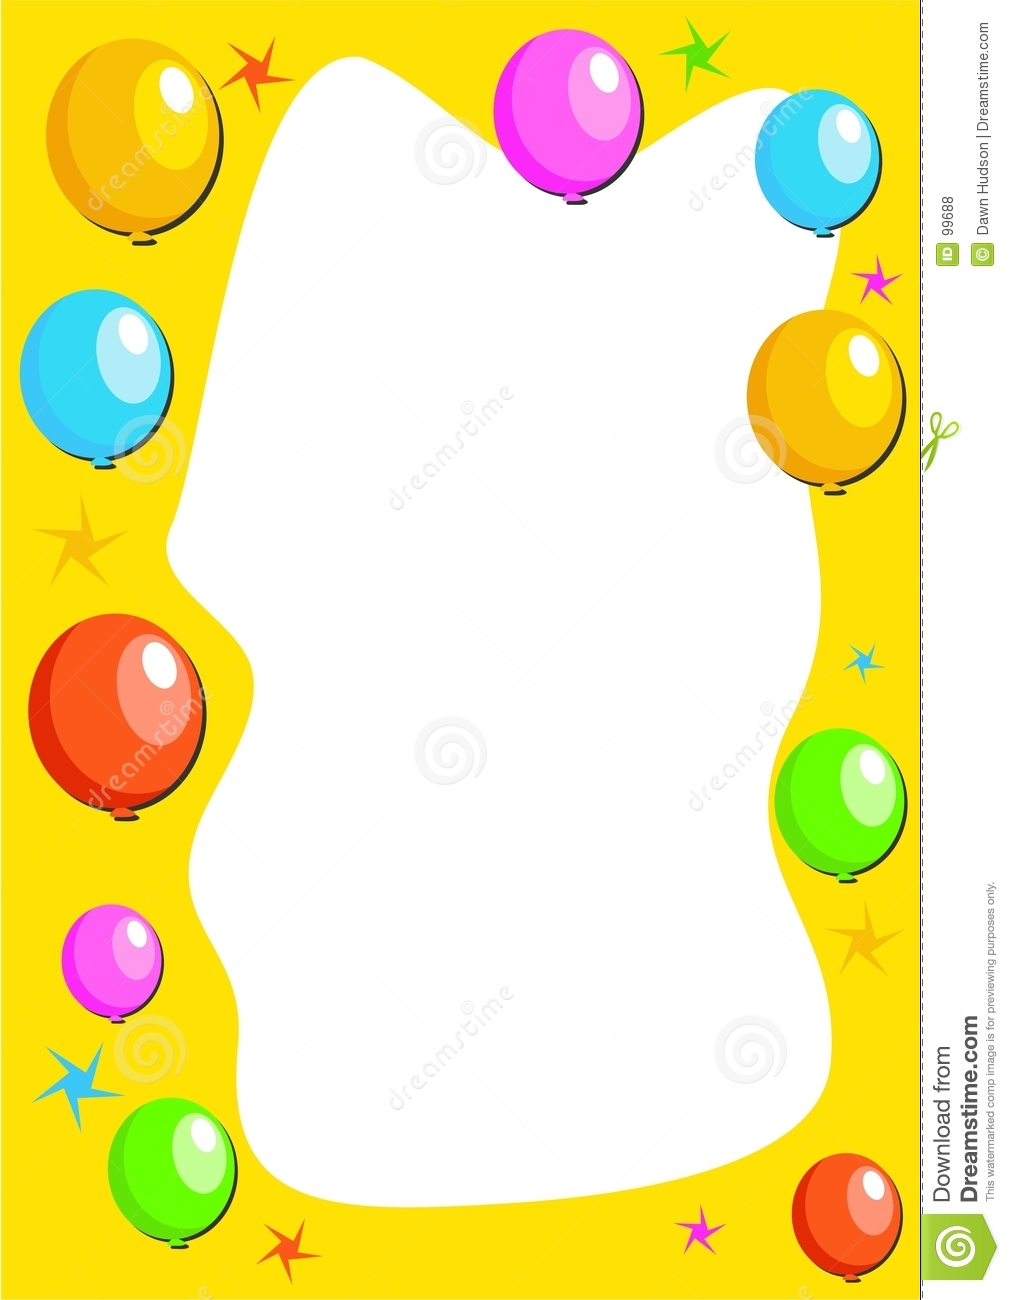 birthday party border ; birthday-party-clip-art-borders-clipart-panda-free-clipart-images-2vbFbb-clipart